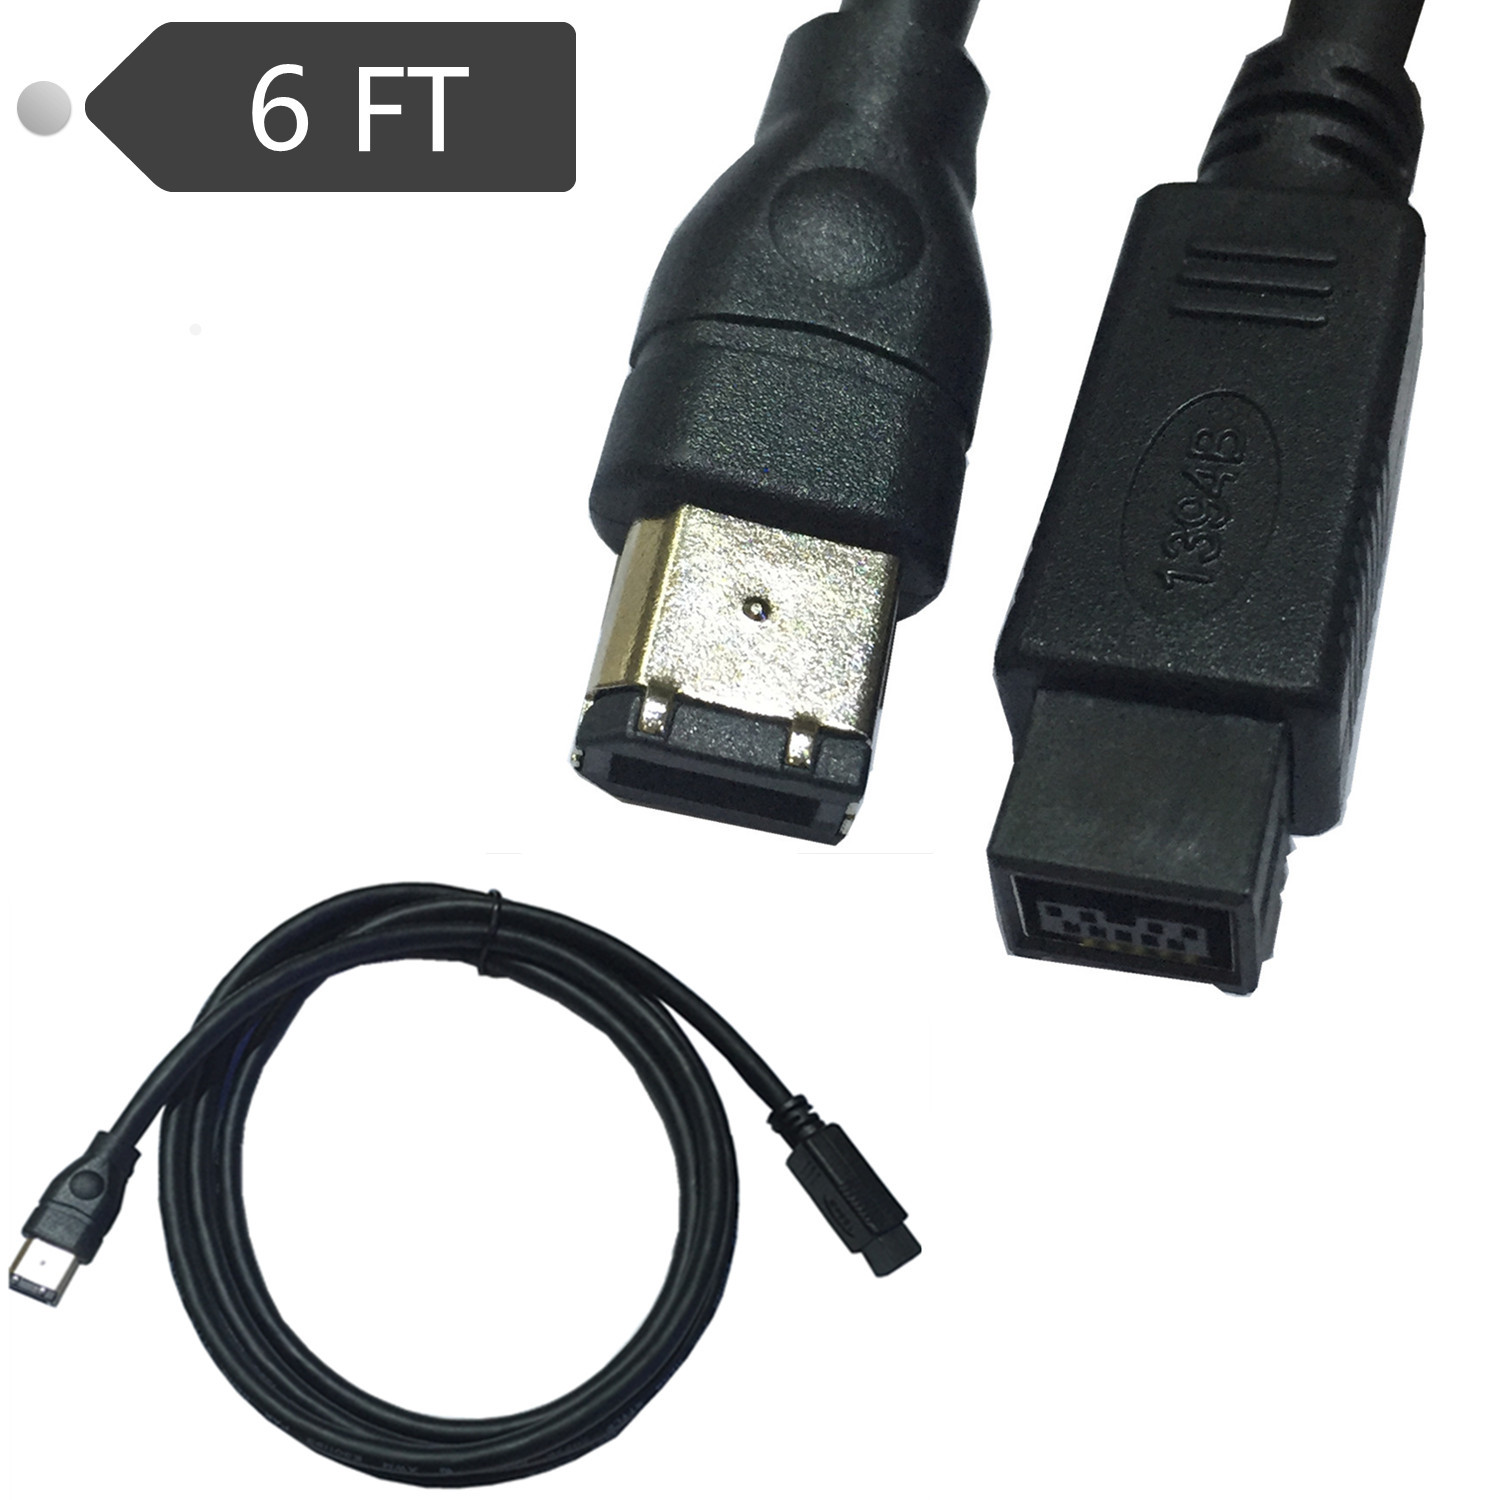 Black IEEE 1394 Firewire 800 to Firewire 400 Cable, 9 Pin/6 Pin Male ...